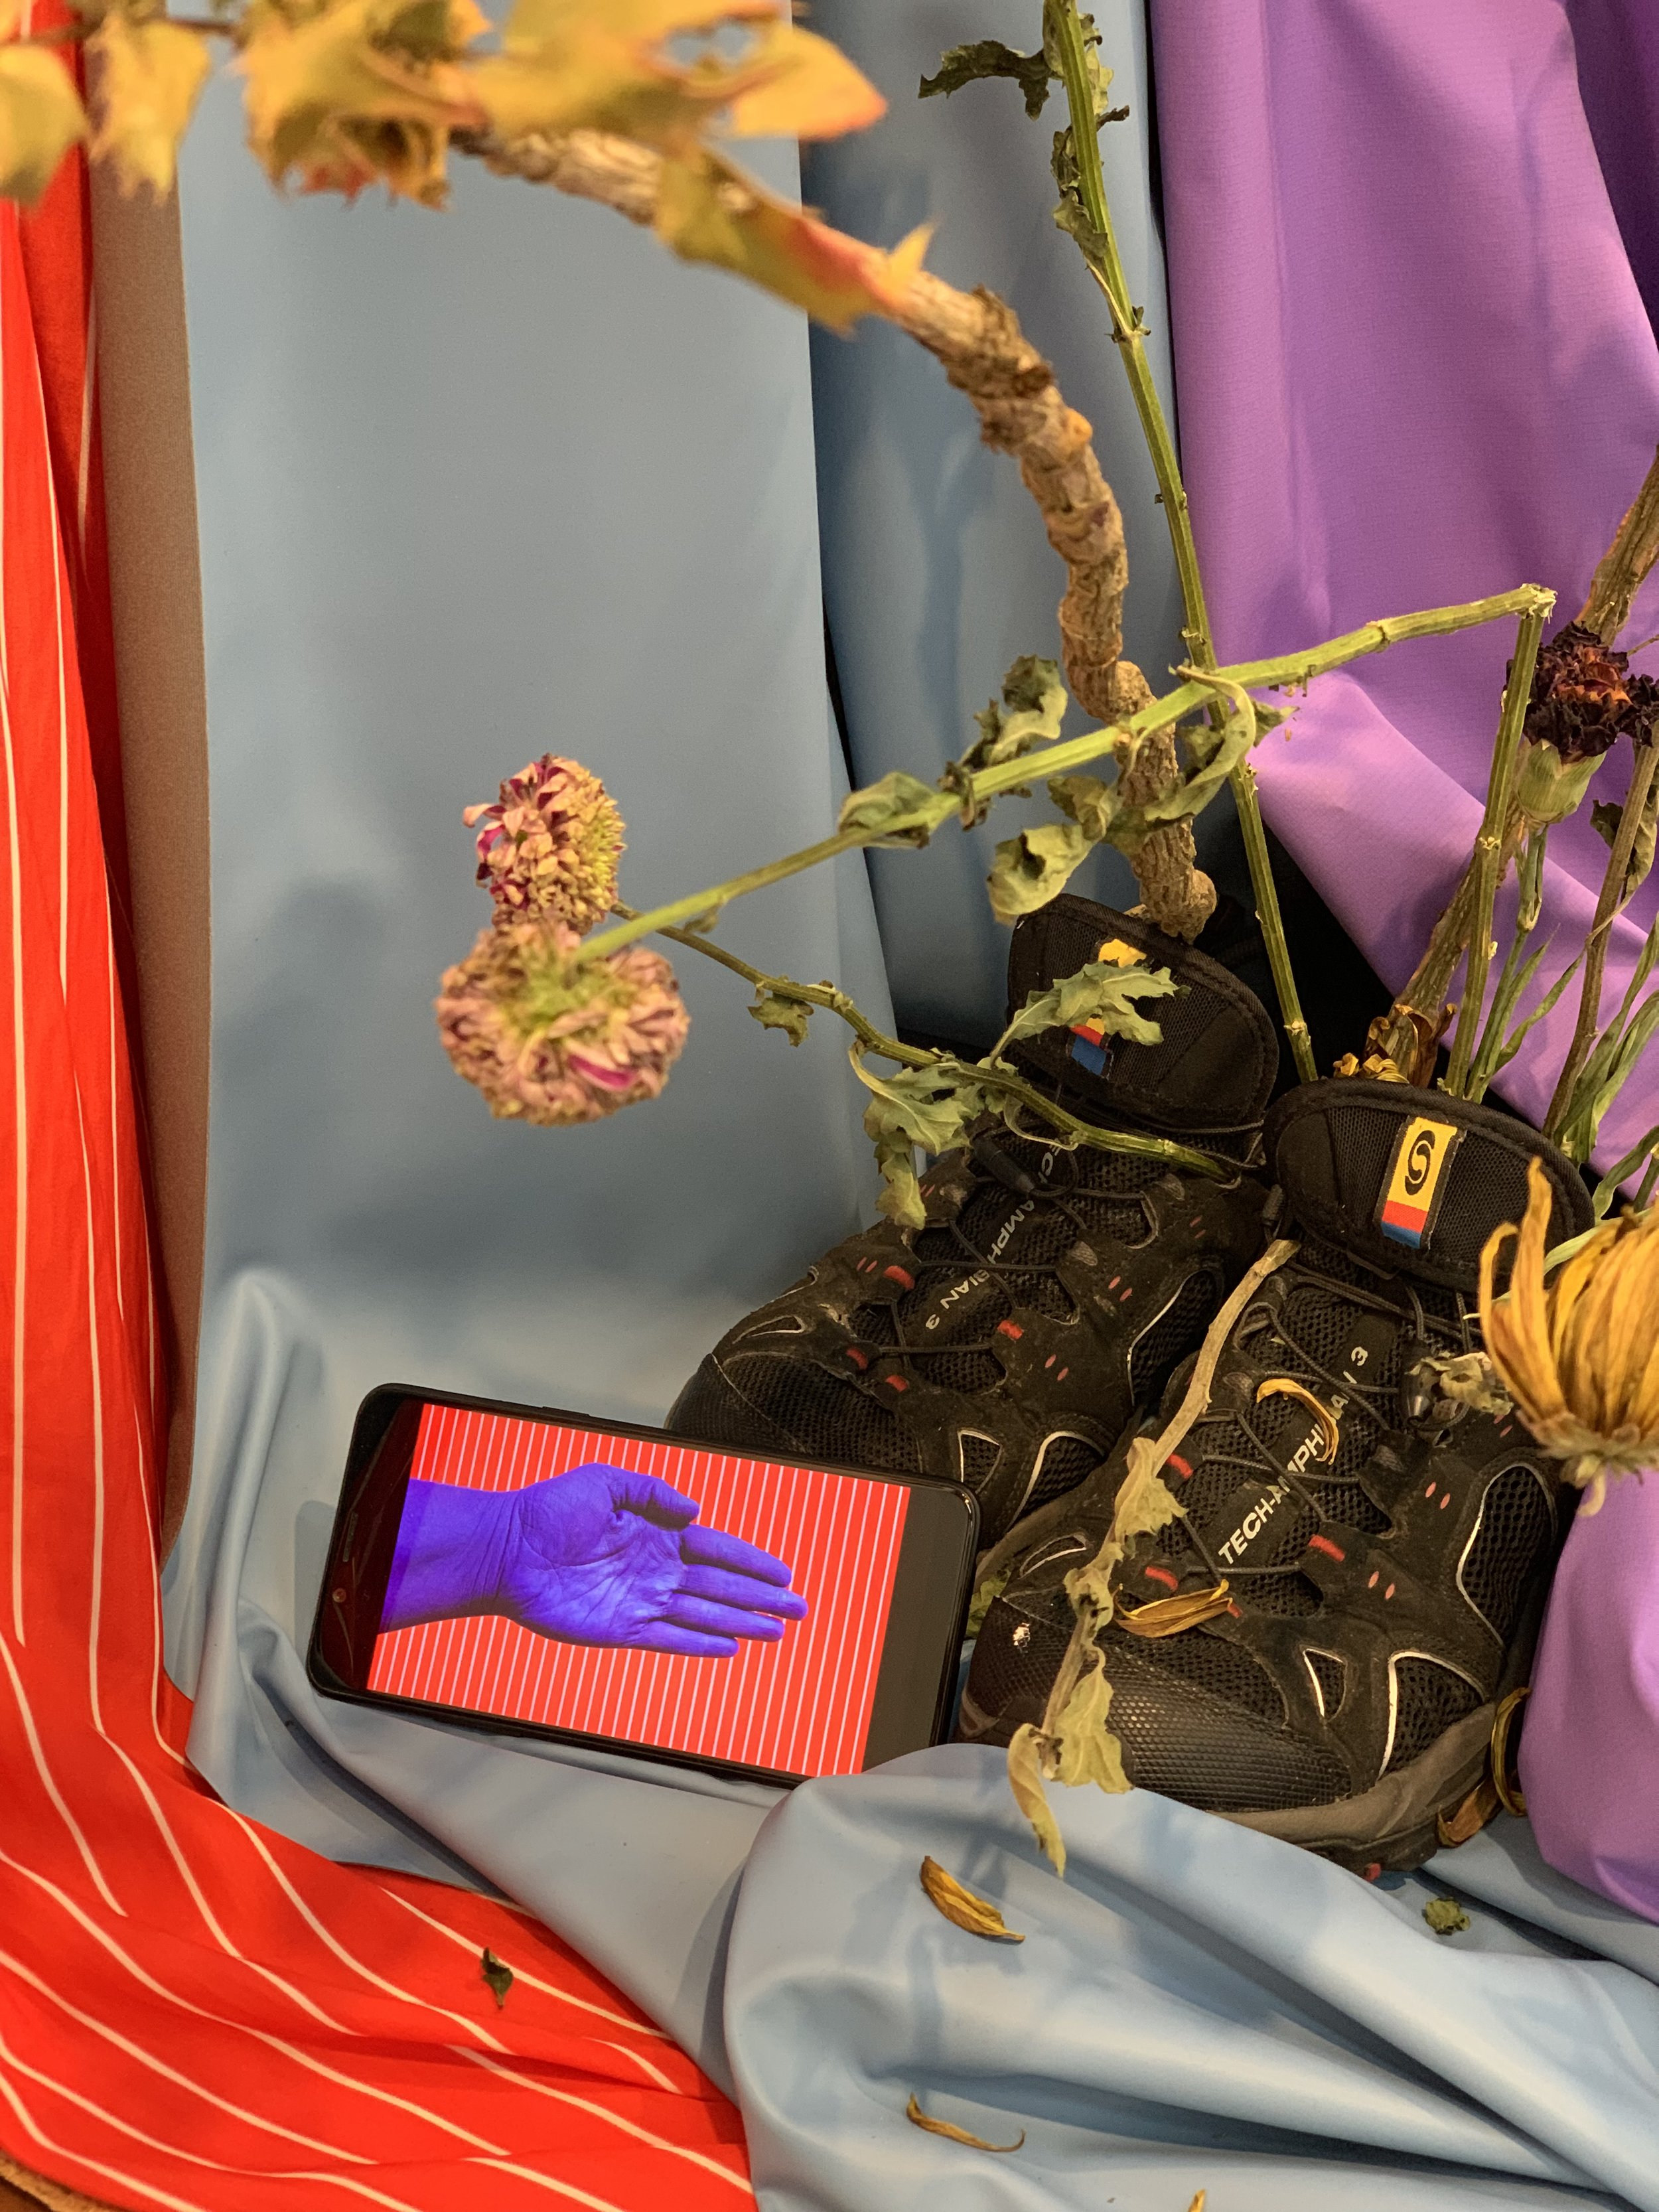 A misunderstanding of what it means to be tender , 2018, Fabric, flowers (chrysanthemum, carnation, holly), leather, whip, shoes, nipple tassel, kenzan, flower net, sansevieria cylindrica, small phone screen playing video of the same title, tv monitor playing video of same title. Commissioned by Move Arts Japan for exhibition at 3331 Arts Chiyoda Gallery, Tokyo, Japan.